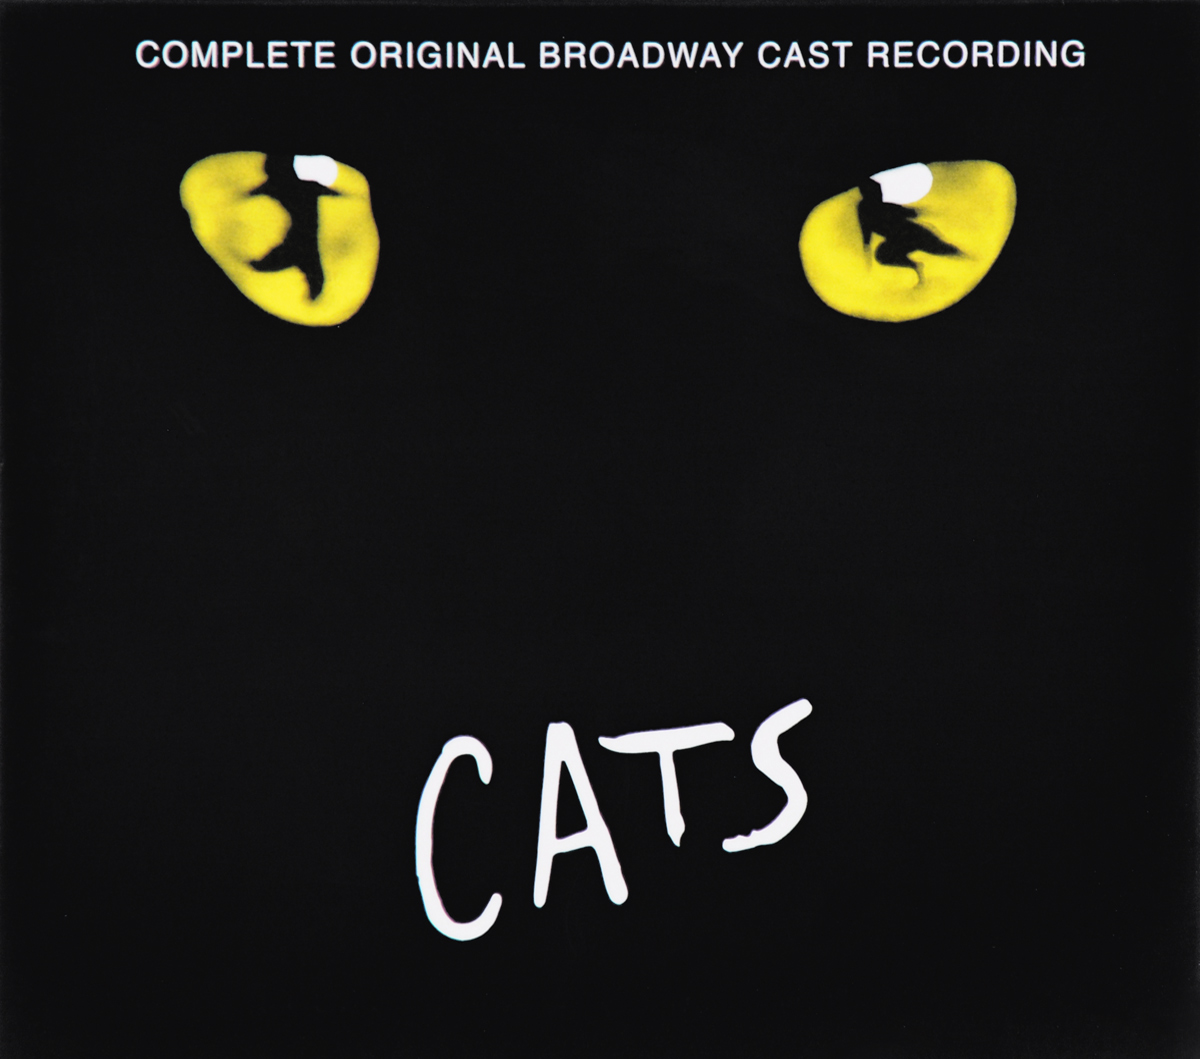 Original Broadway Cast Chorus Andrew Lloyd Webber. Cats. Complete Original Broadway Cast Recording. Deluxe Edition (2 CD) cd led zeppelin ii deluxe edition